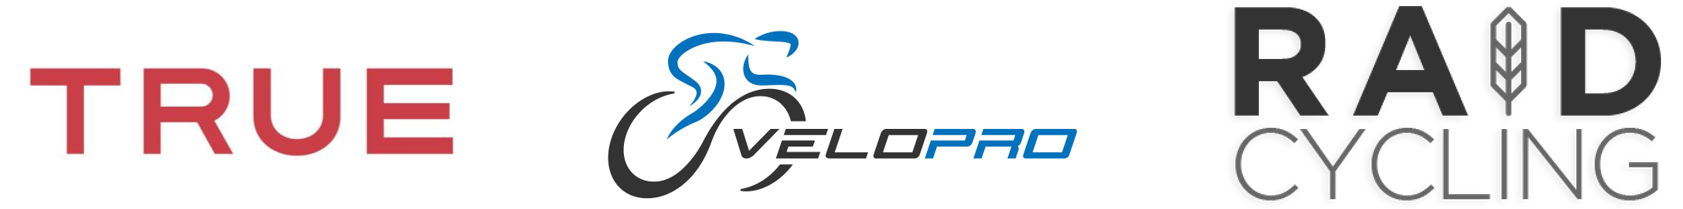 VeloPro and Premium Tour Operator RAID CYCLING Announce Partnership image